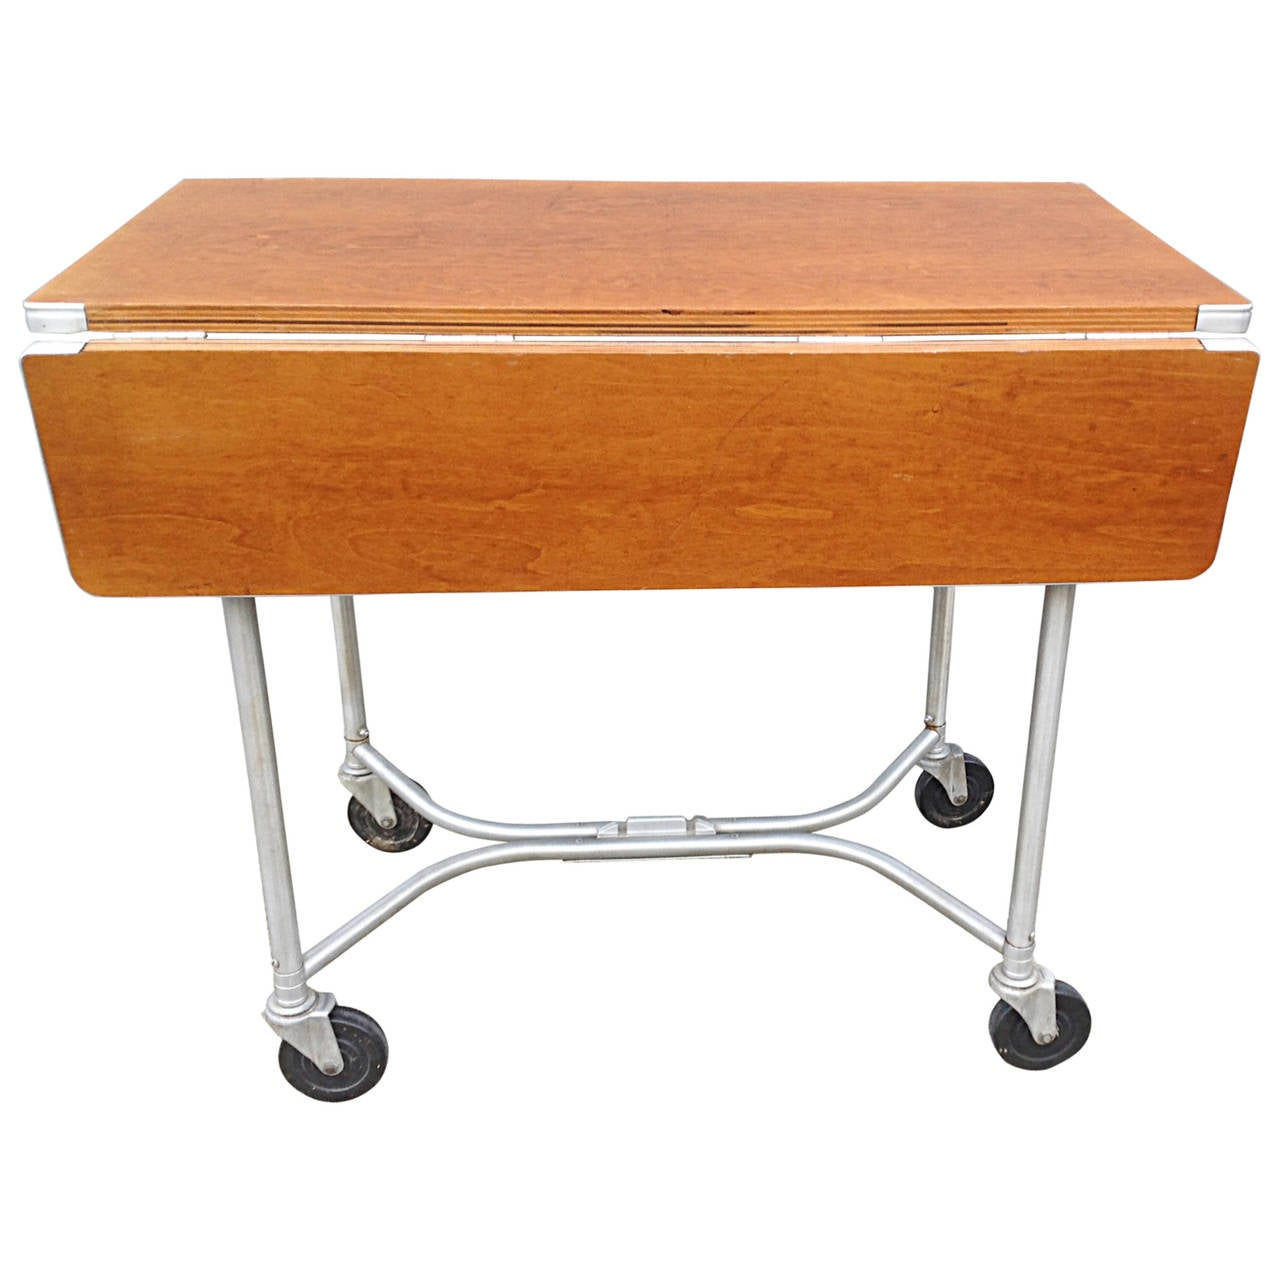 warren mcarthur drop leaf rolling table for sale at 1stdibs